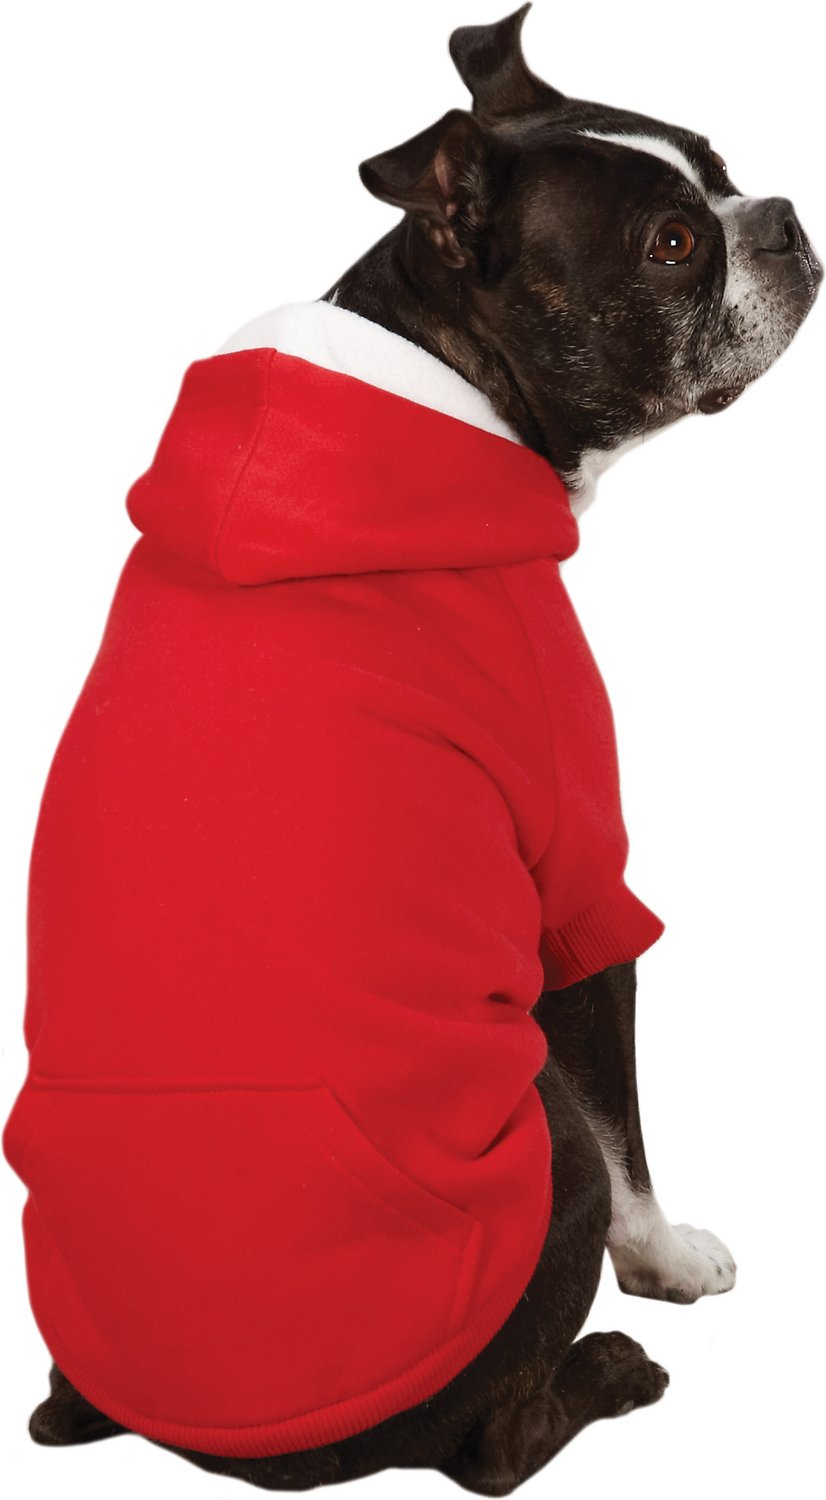 Dog in a hoodie